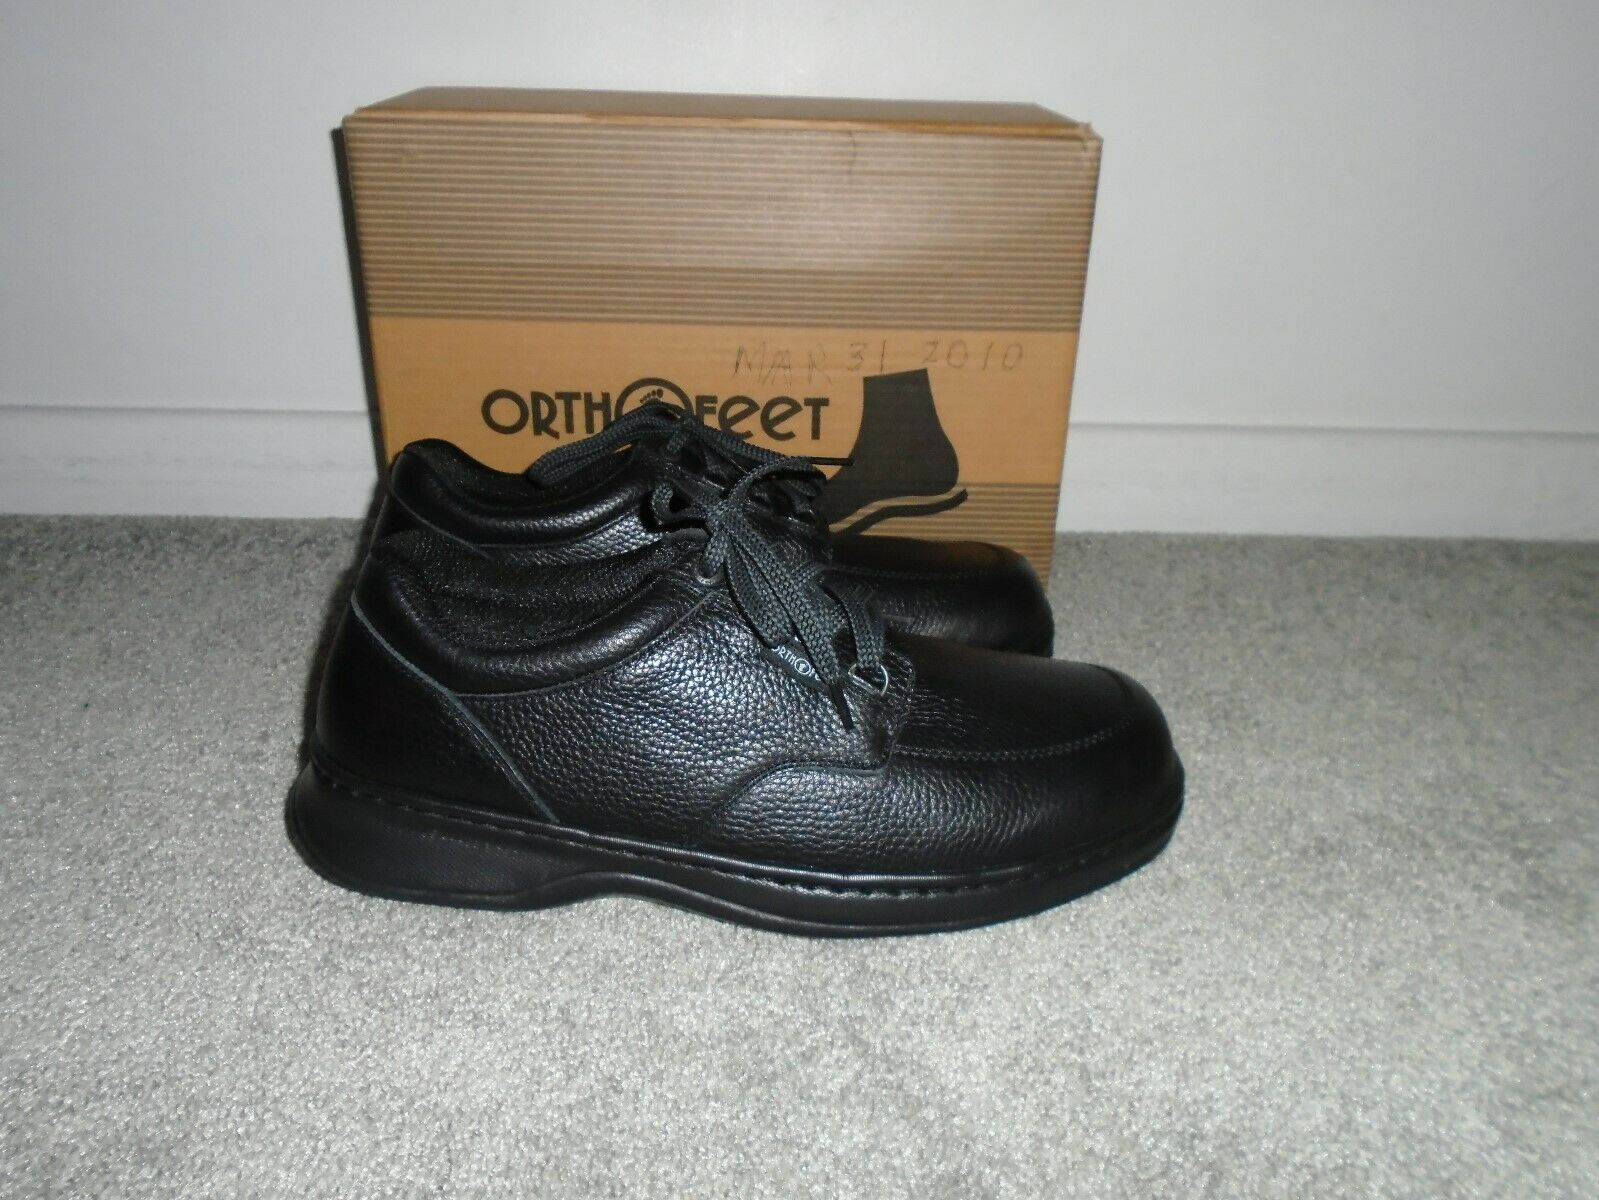 Orthofeet 410 Men's Comfort Diabetic Therapeutic Extra Depth shoes 11 1 2 Medium